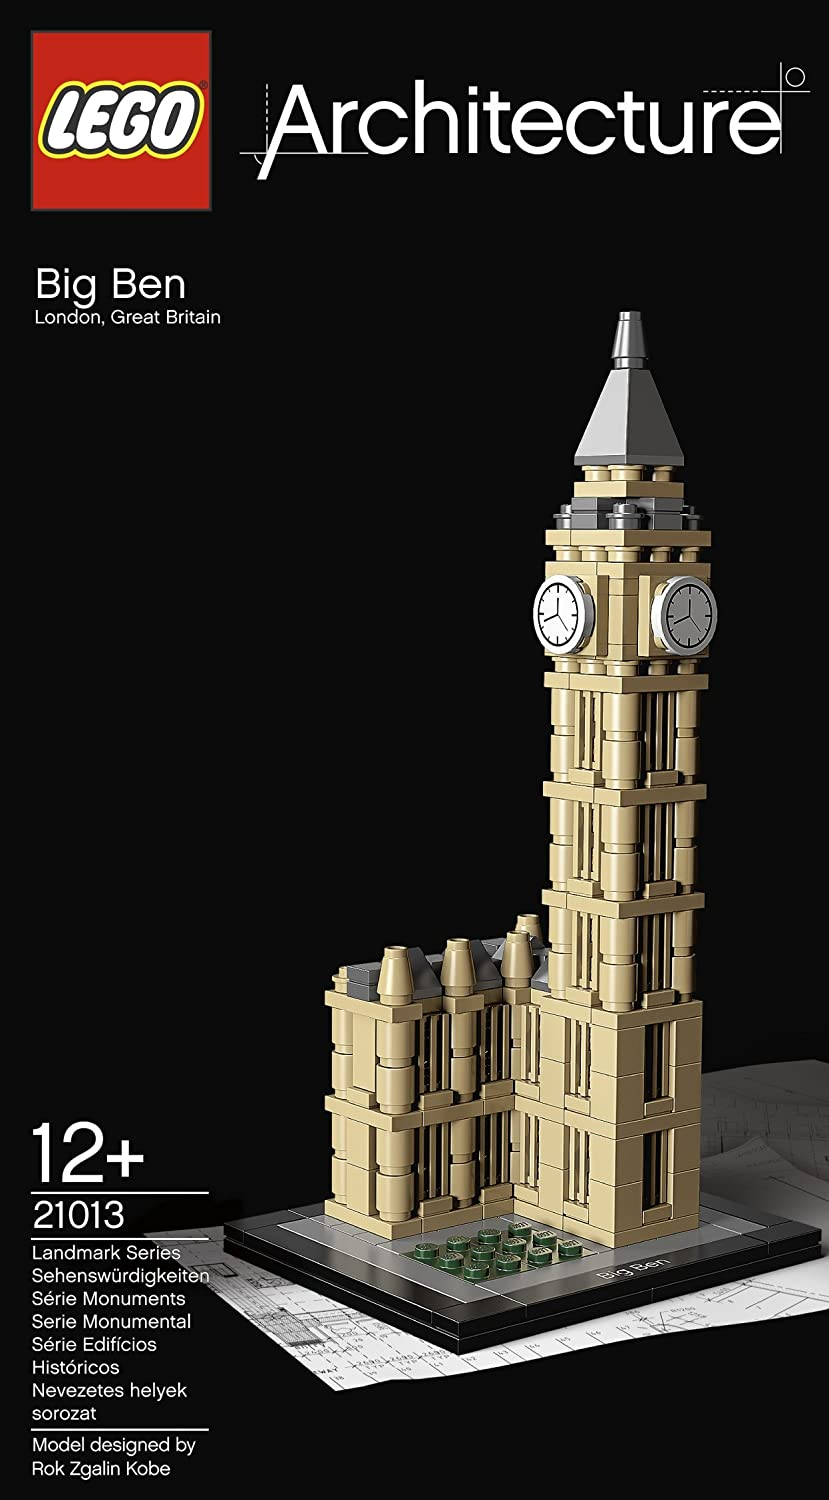 21013 big ben de lego. Black Bedroom Furniture Sets. Home Design Ideas